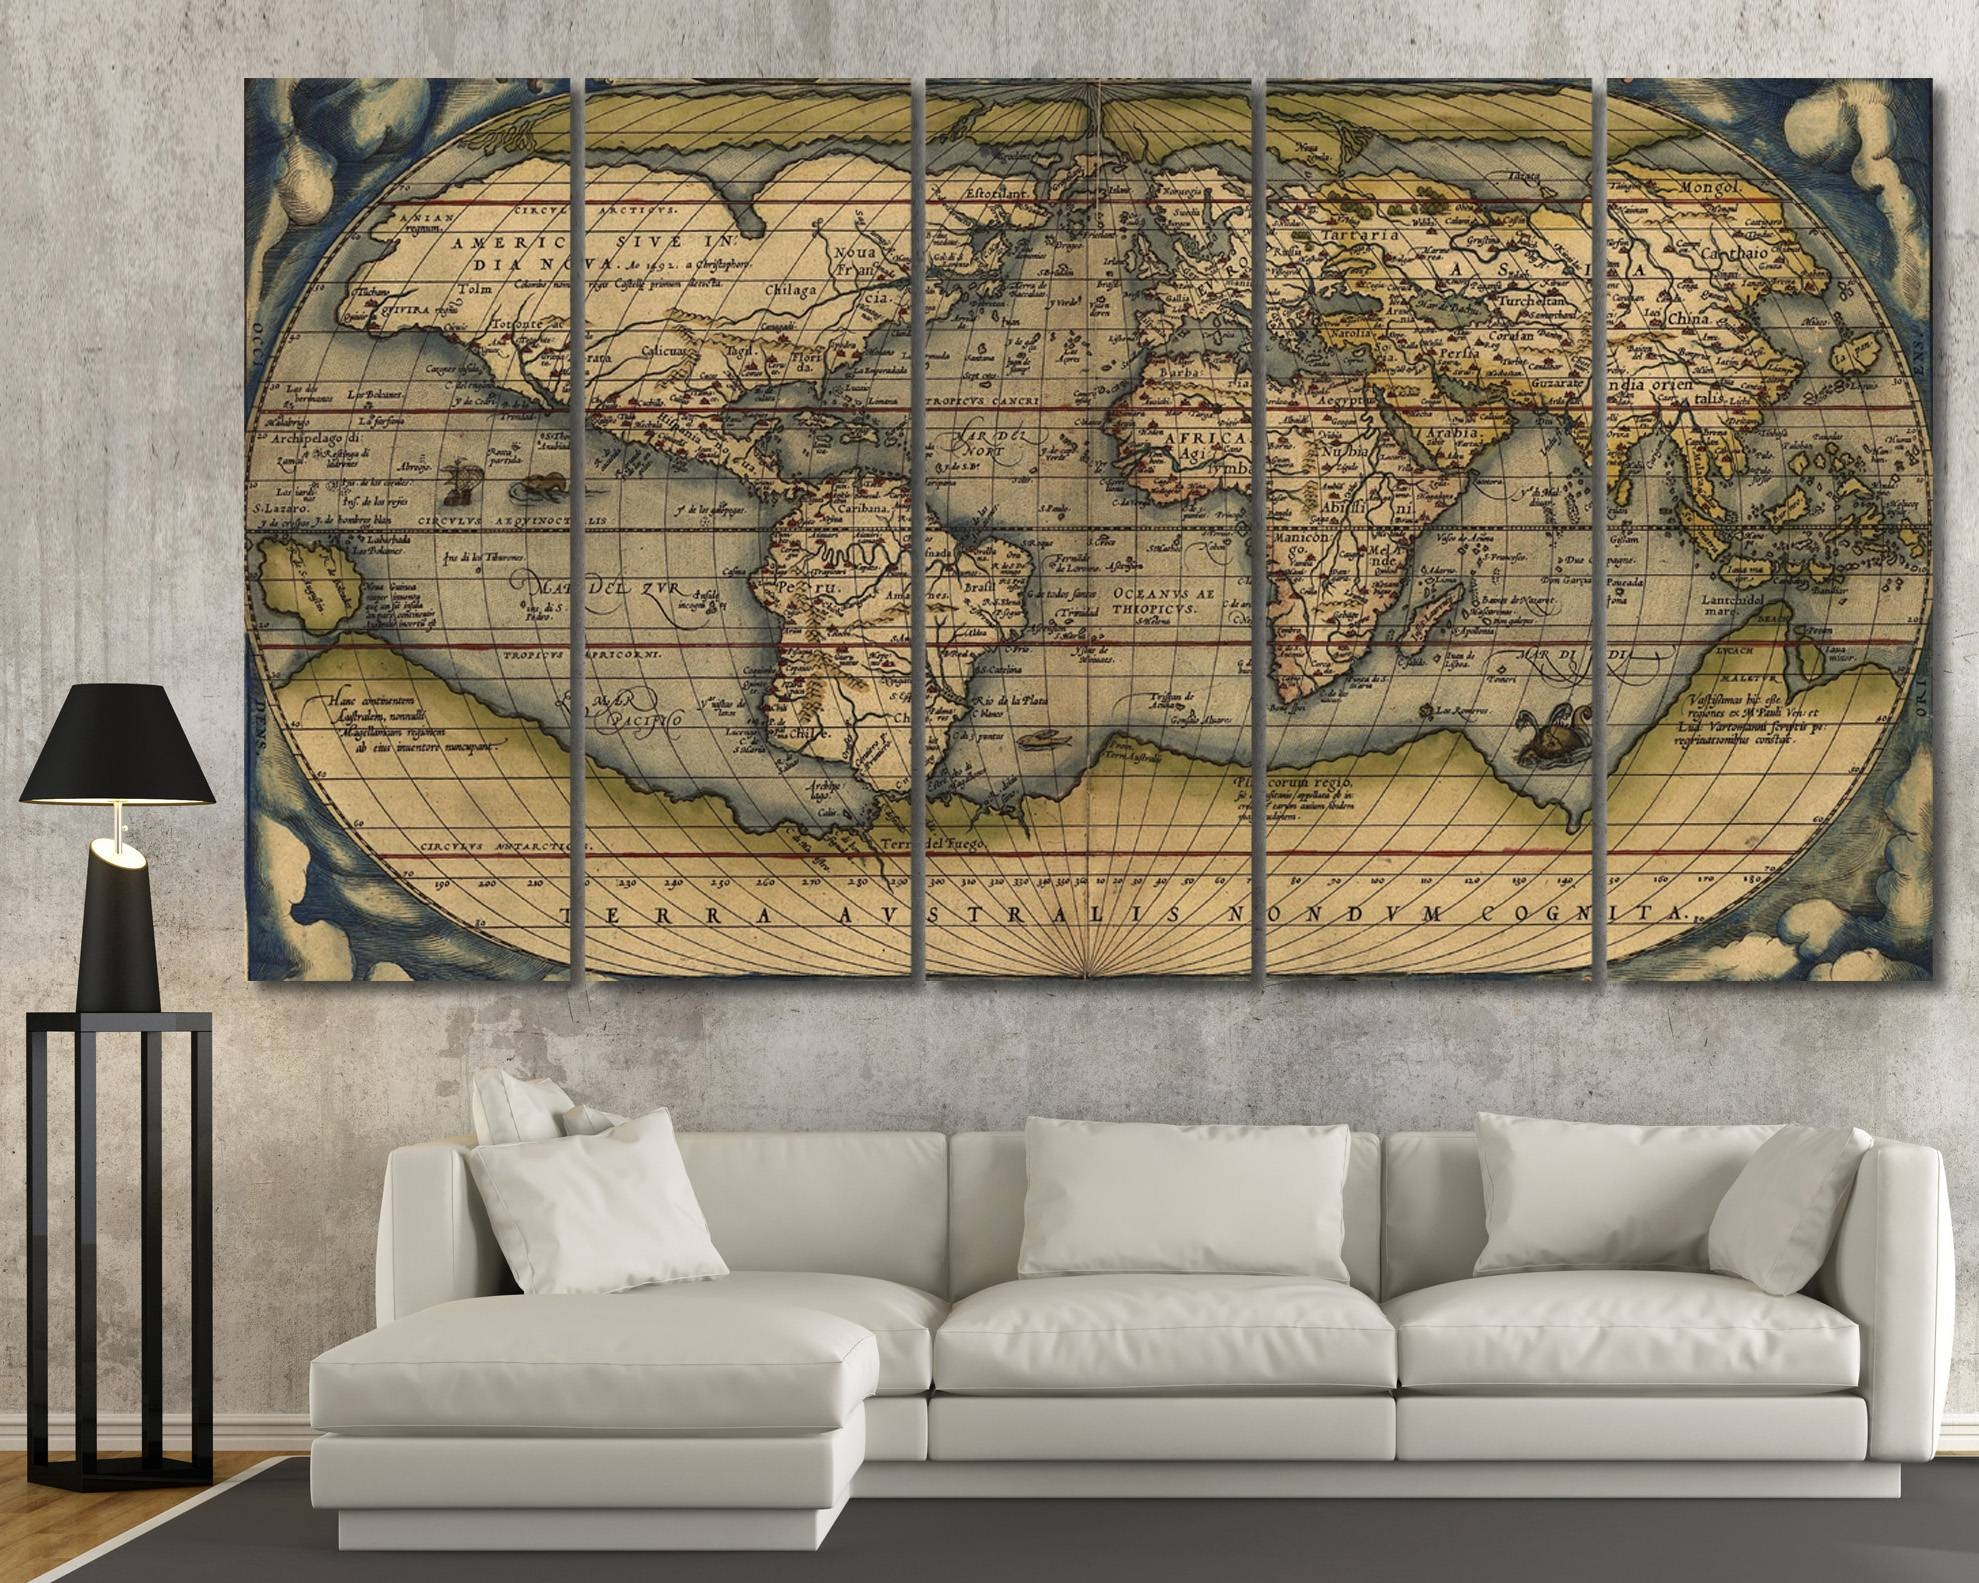 Large Vintage Wall Art Old World Map At Texelprintart Intended For Current Canvas Map Wall Art (View 8 of 20)